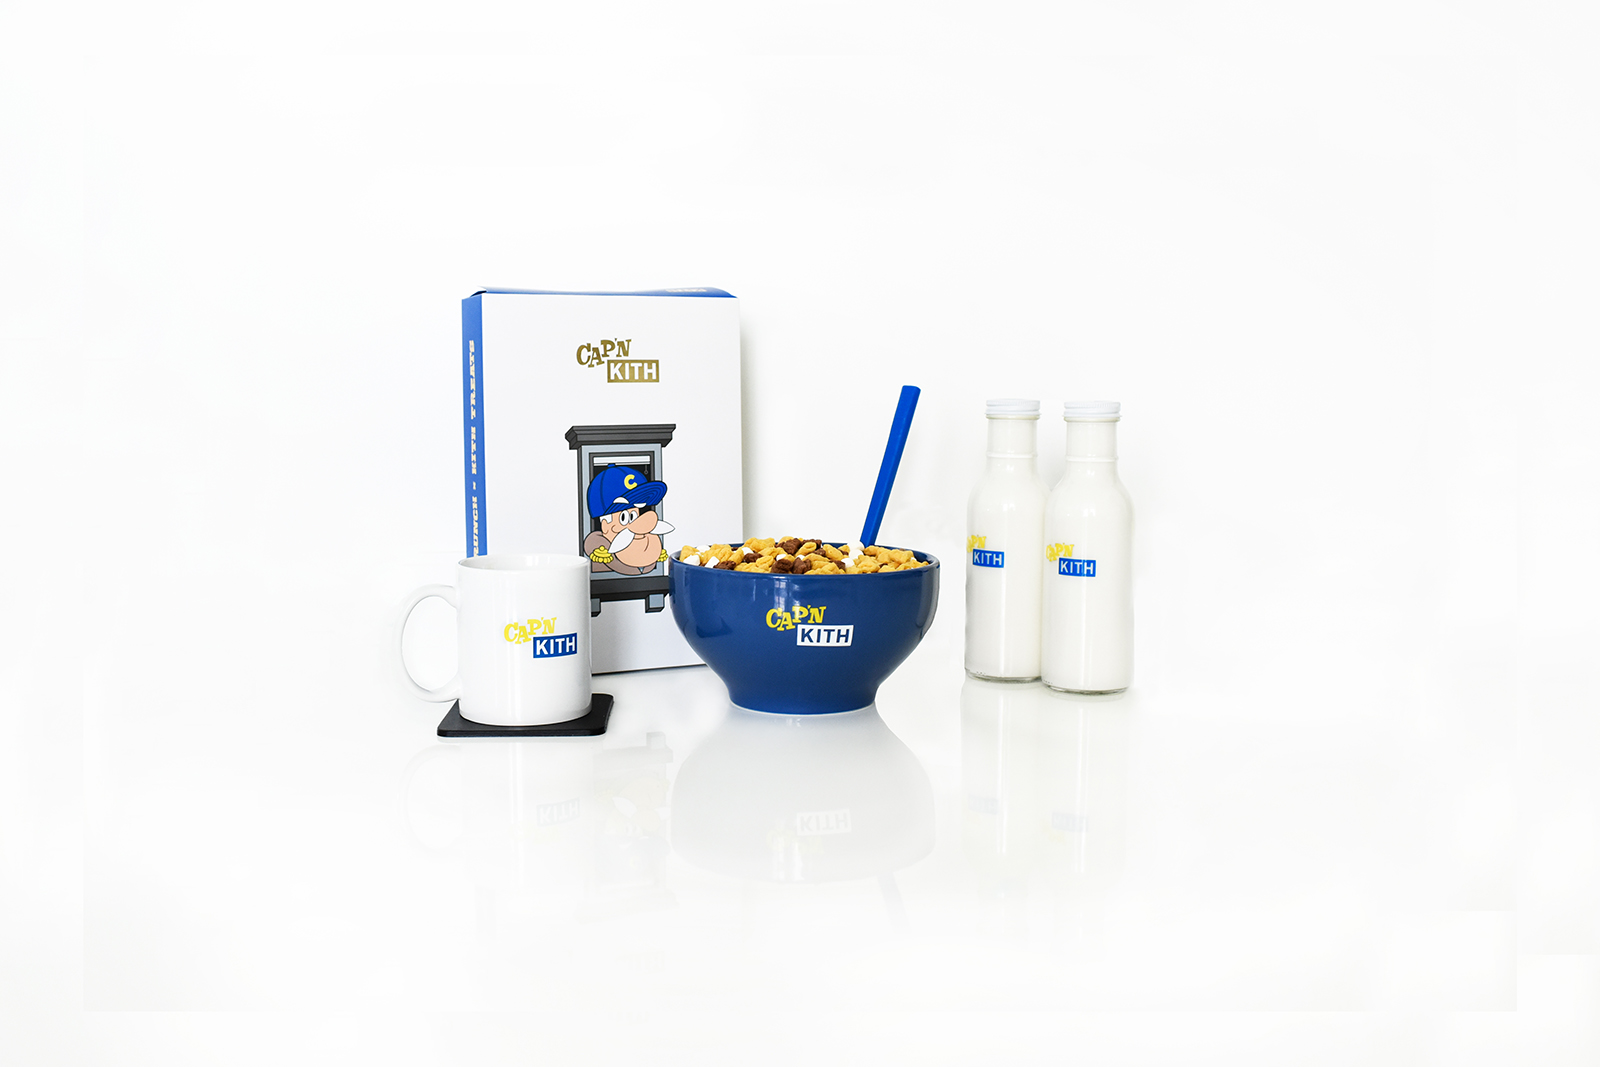 Limited edition Cap'n Kith cereal